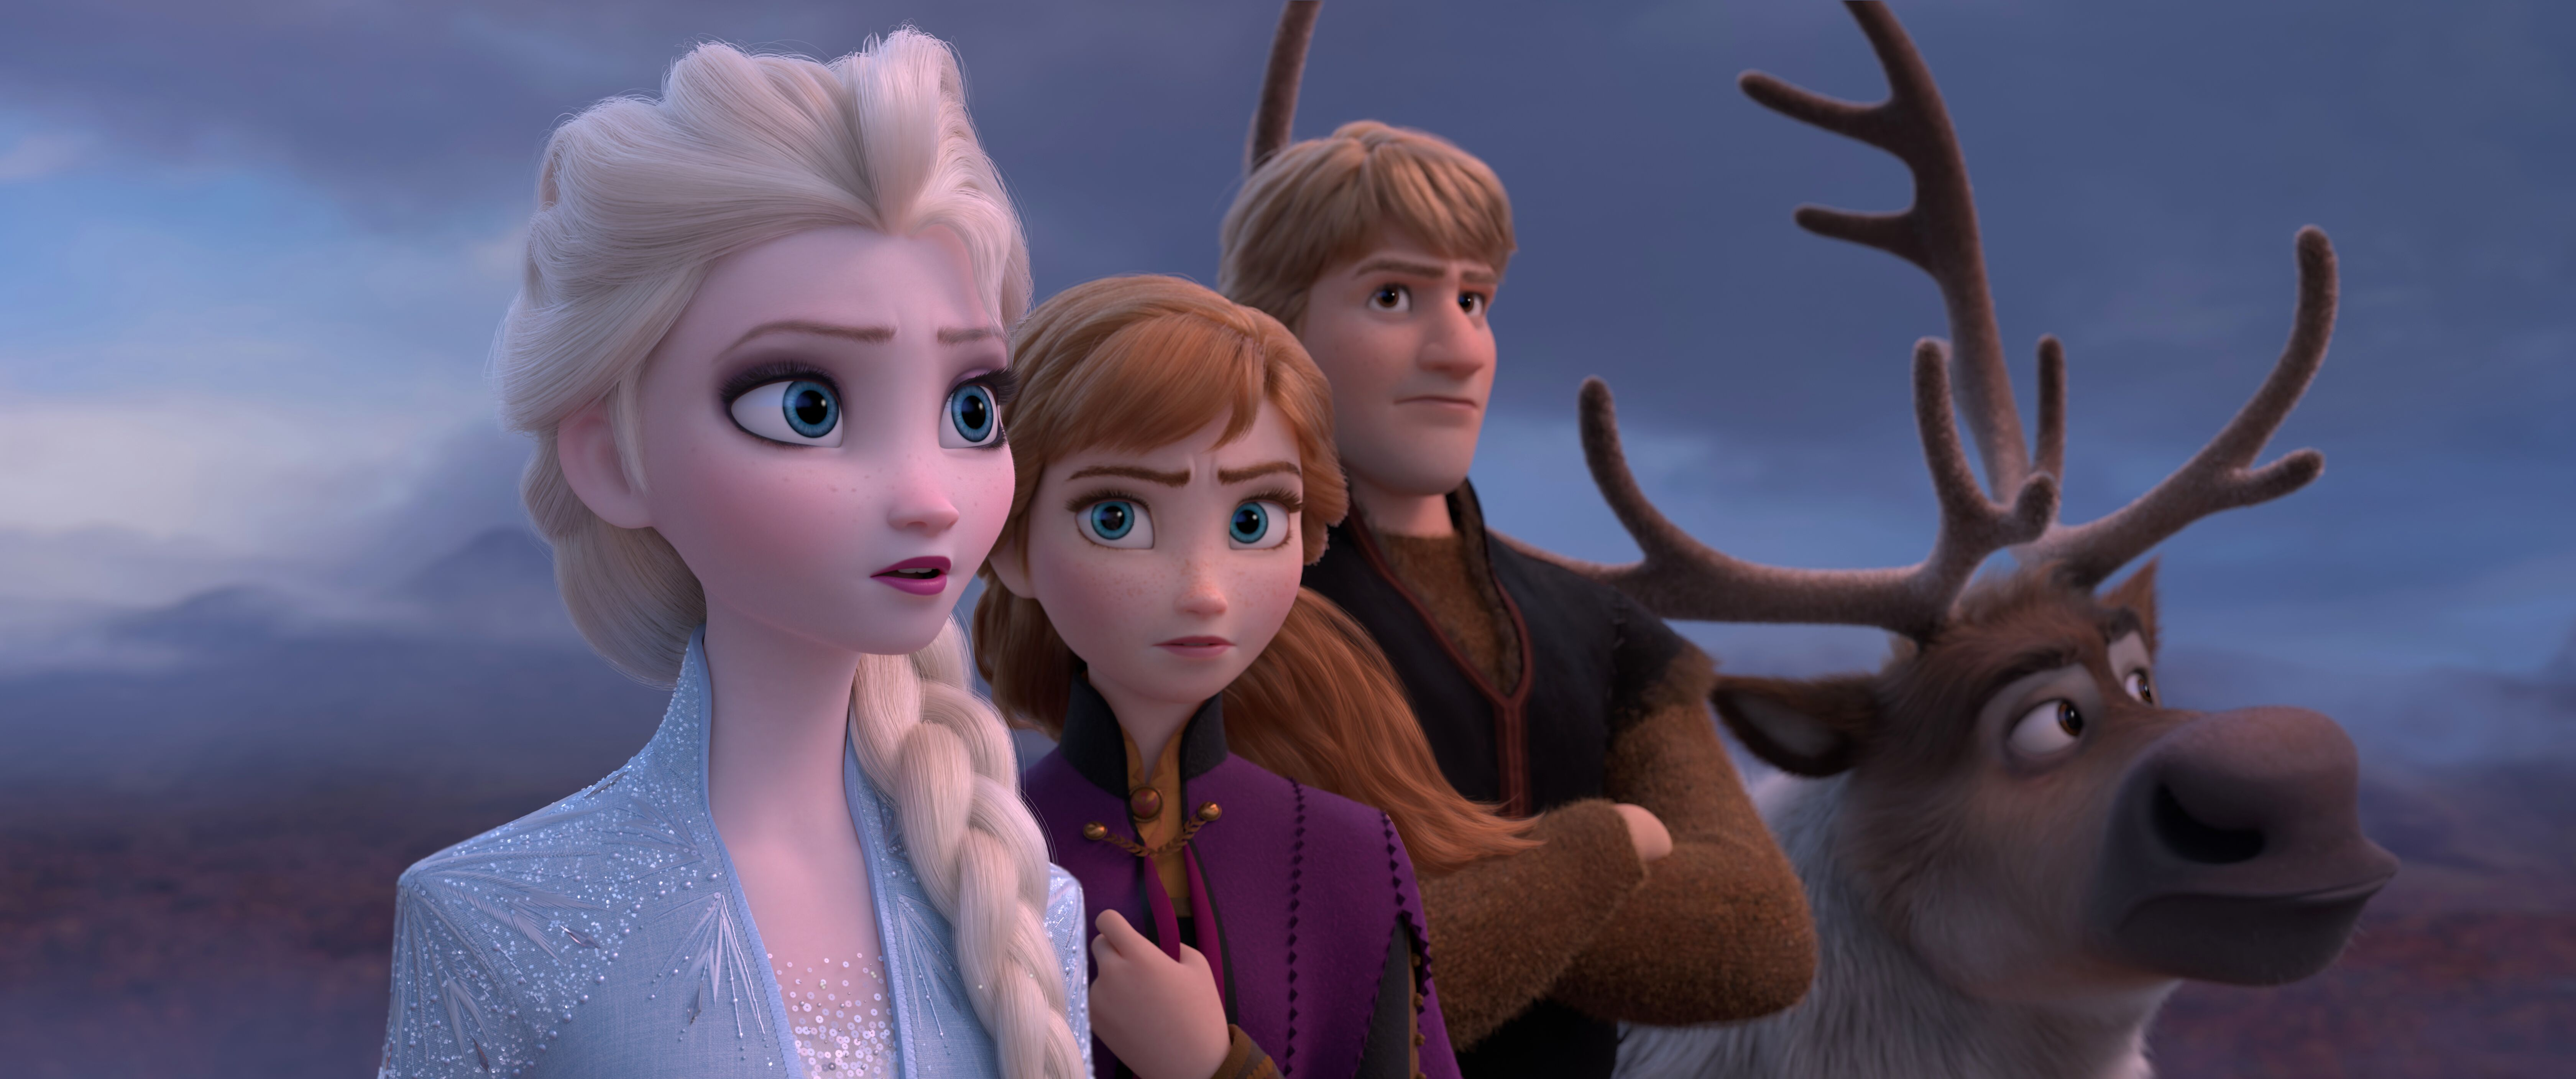 Frozen 2 presto al cinema